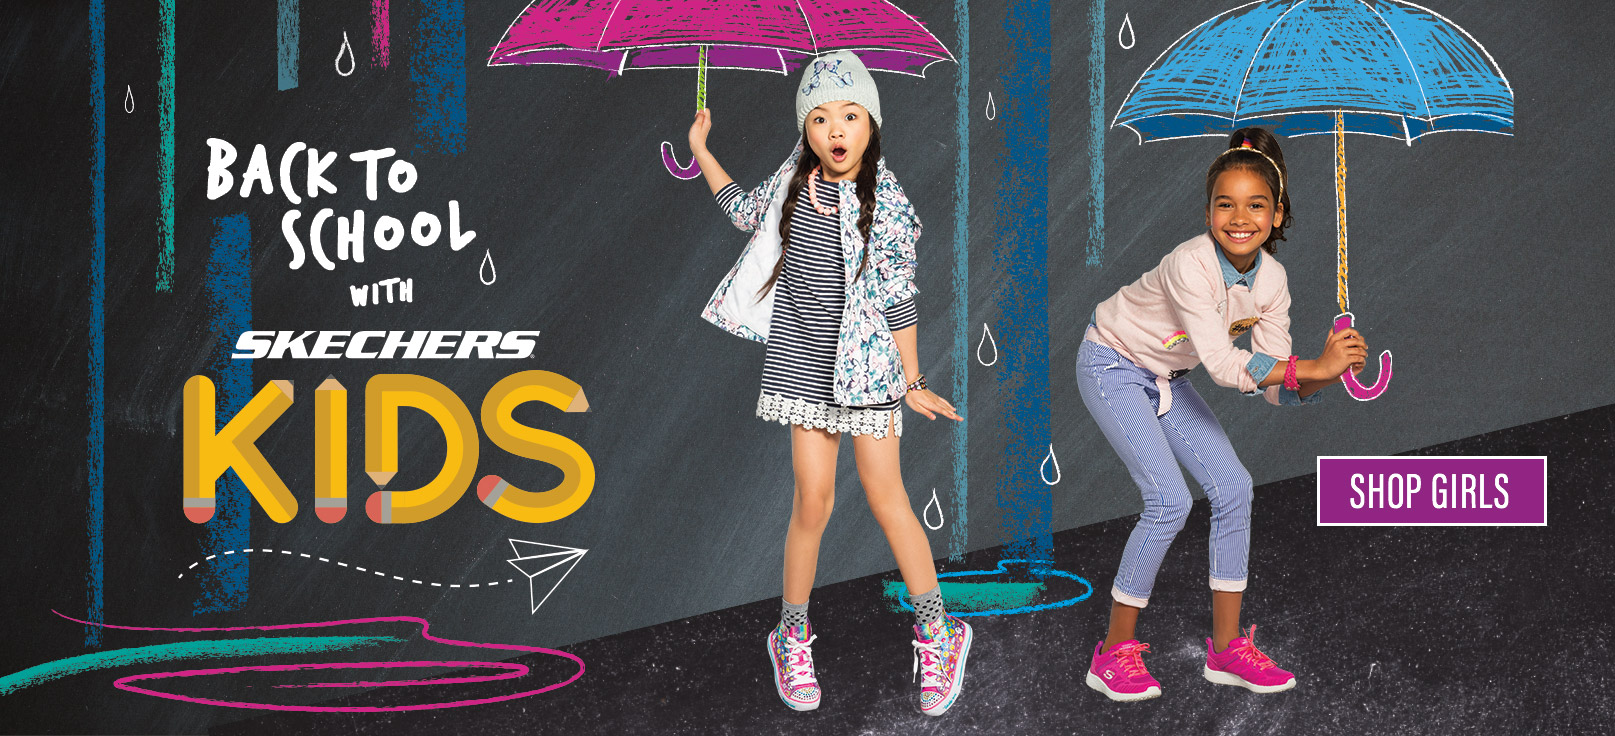 Shop for Girls Skechers Shoes, boots and sandals including Twinkle Toes, Sport, Memory Foam and light up shoes.  Toddler, Pre School and Grade School sizes perfect for Back to School wear.